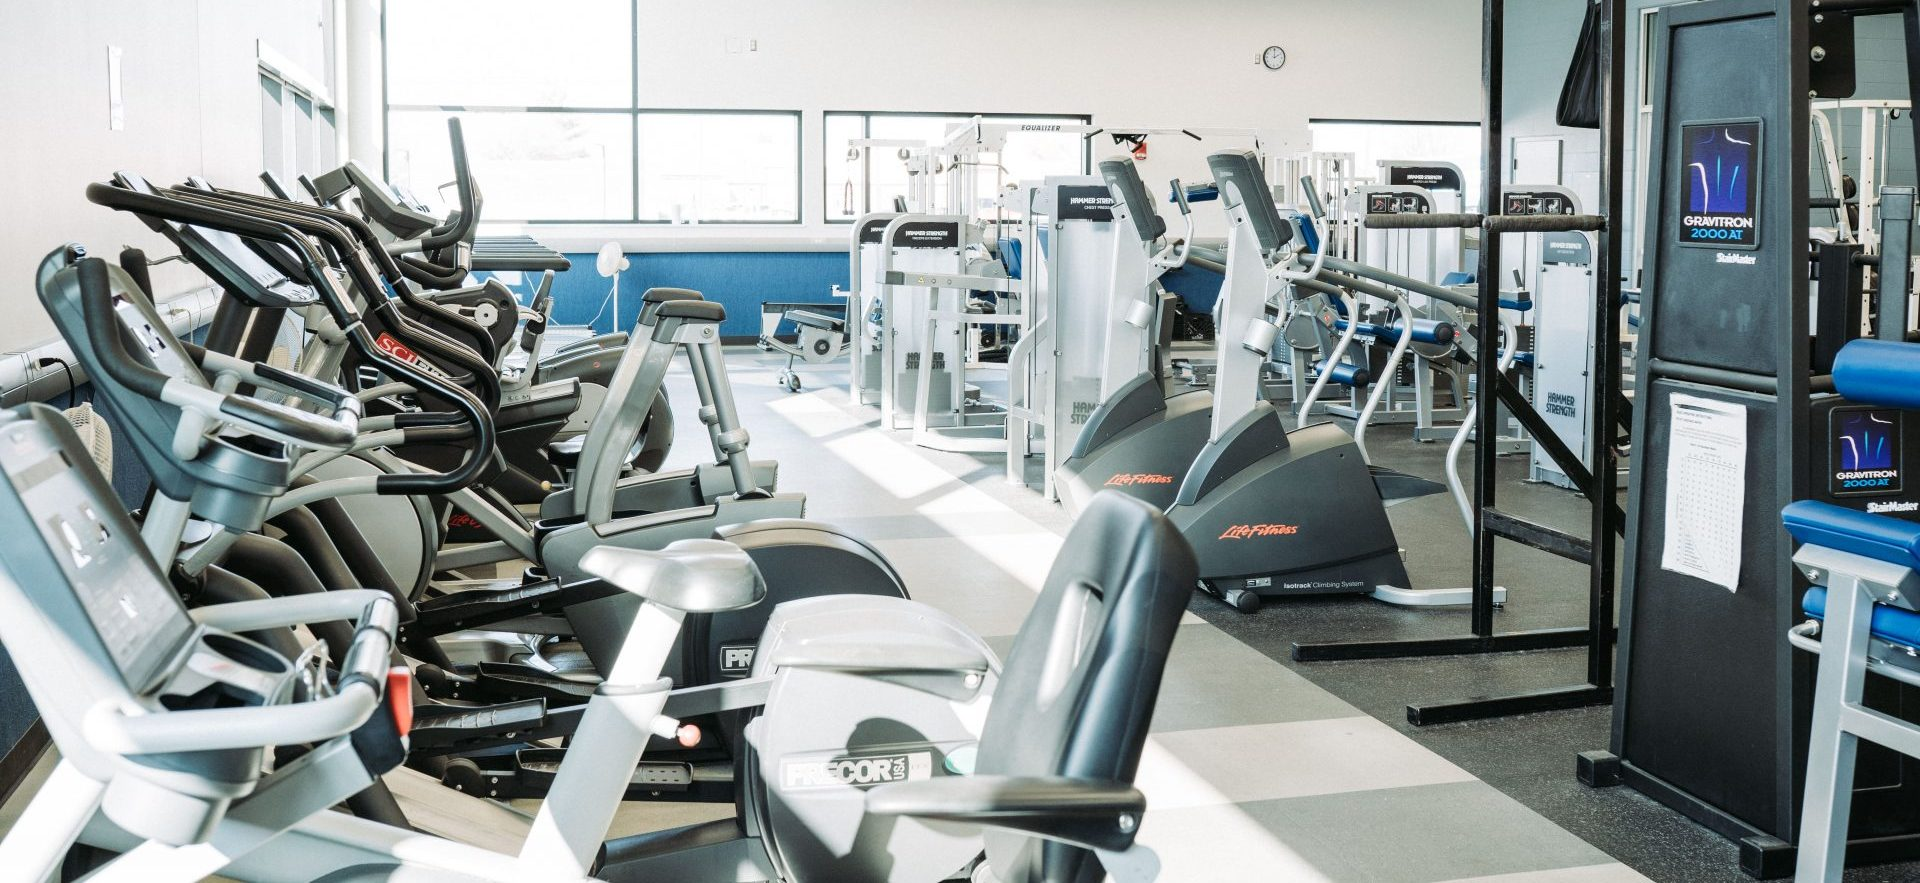 Fitness Center 9 aspect ratio 100x46